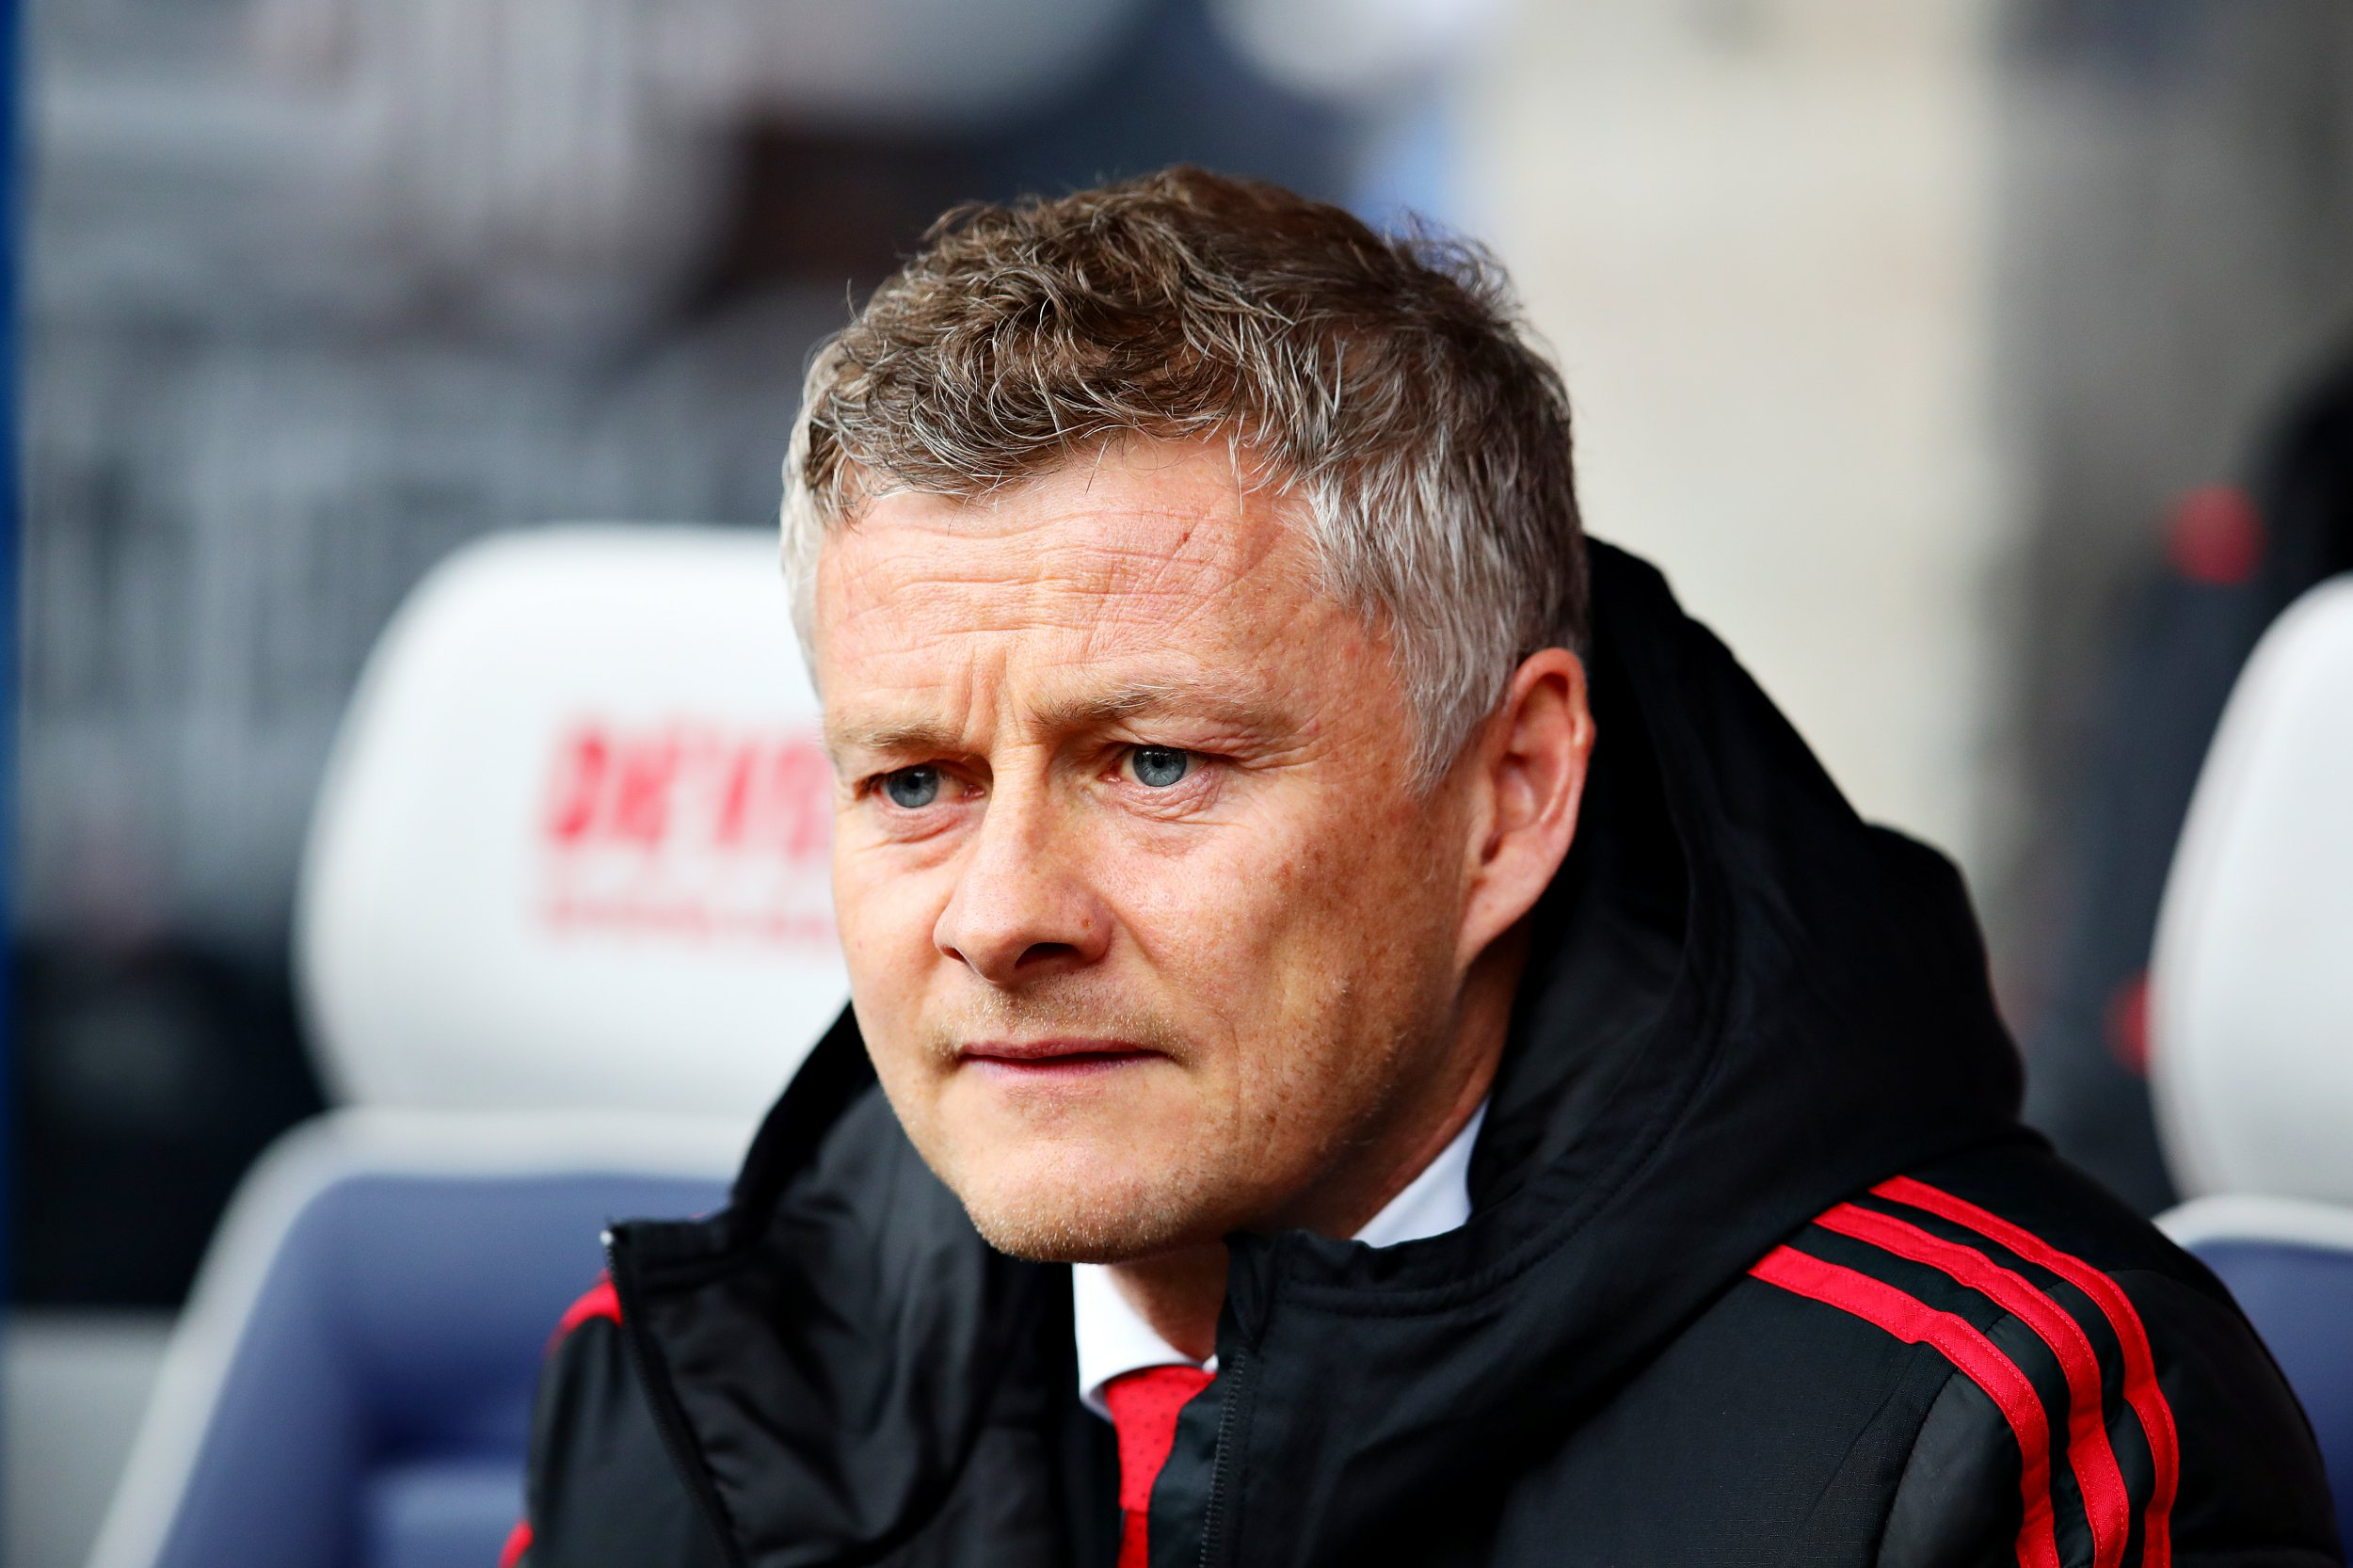 Ole Gunnar Solskjaer 'dismayed' by fitness of Manchester United players after Jose Mourinho's exit